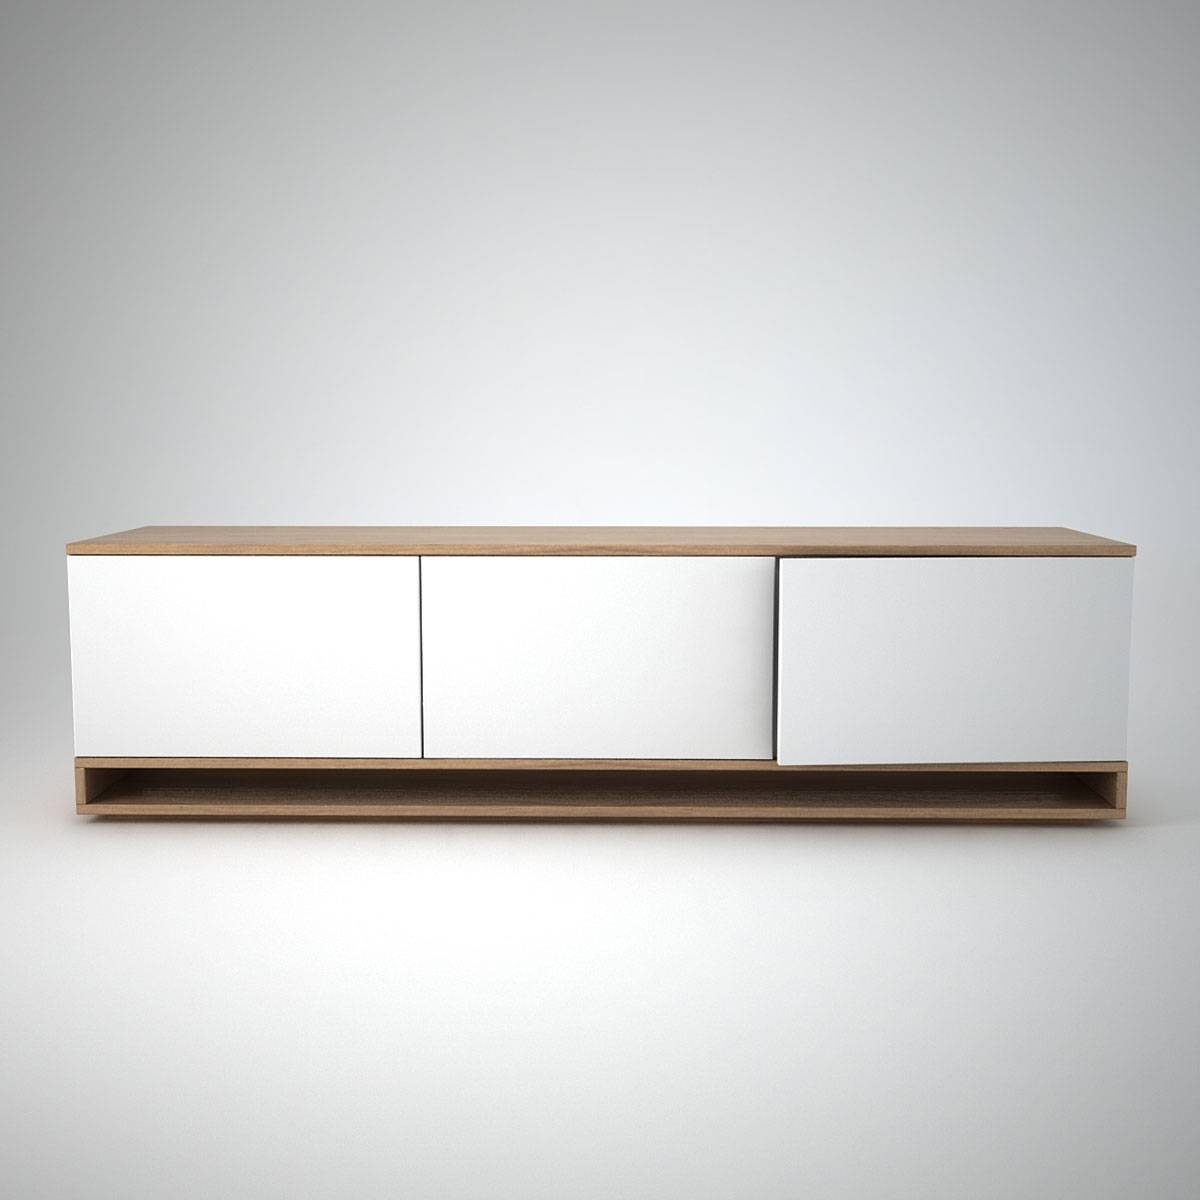 Harlem Low Sideboard (3) White – Join Furniture Intended For Small Low Sideboards (View 9 of 15)